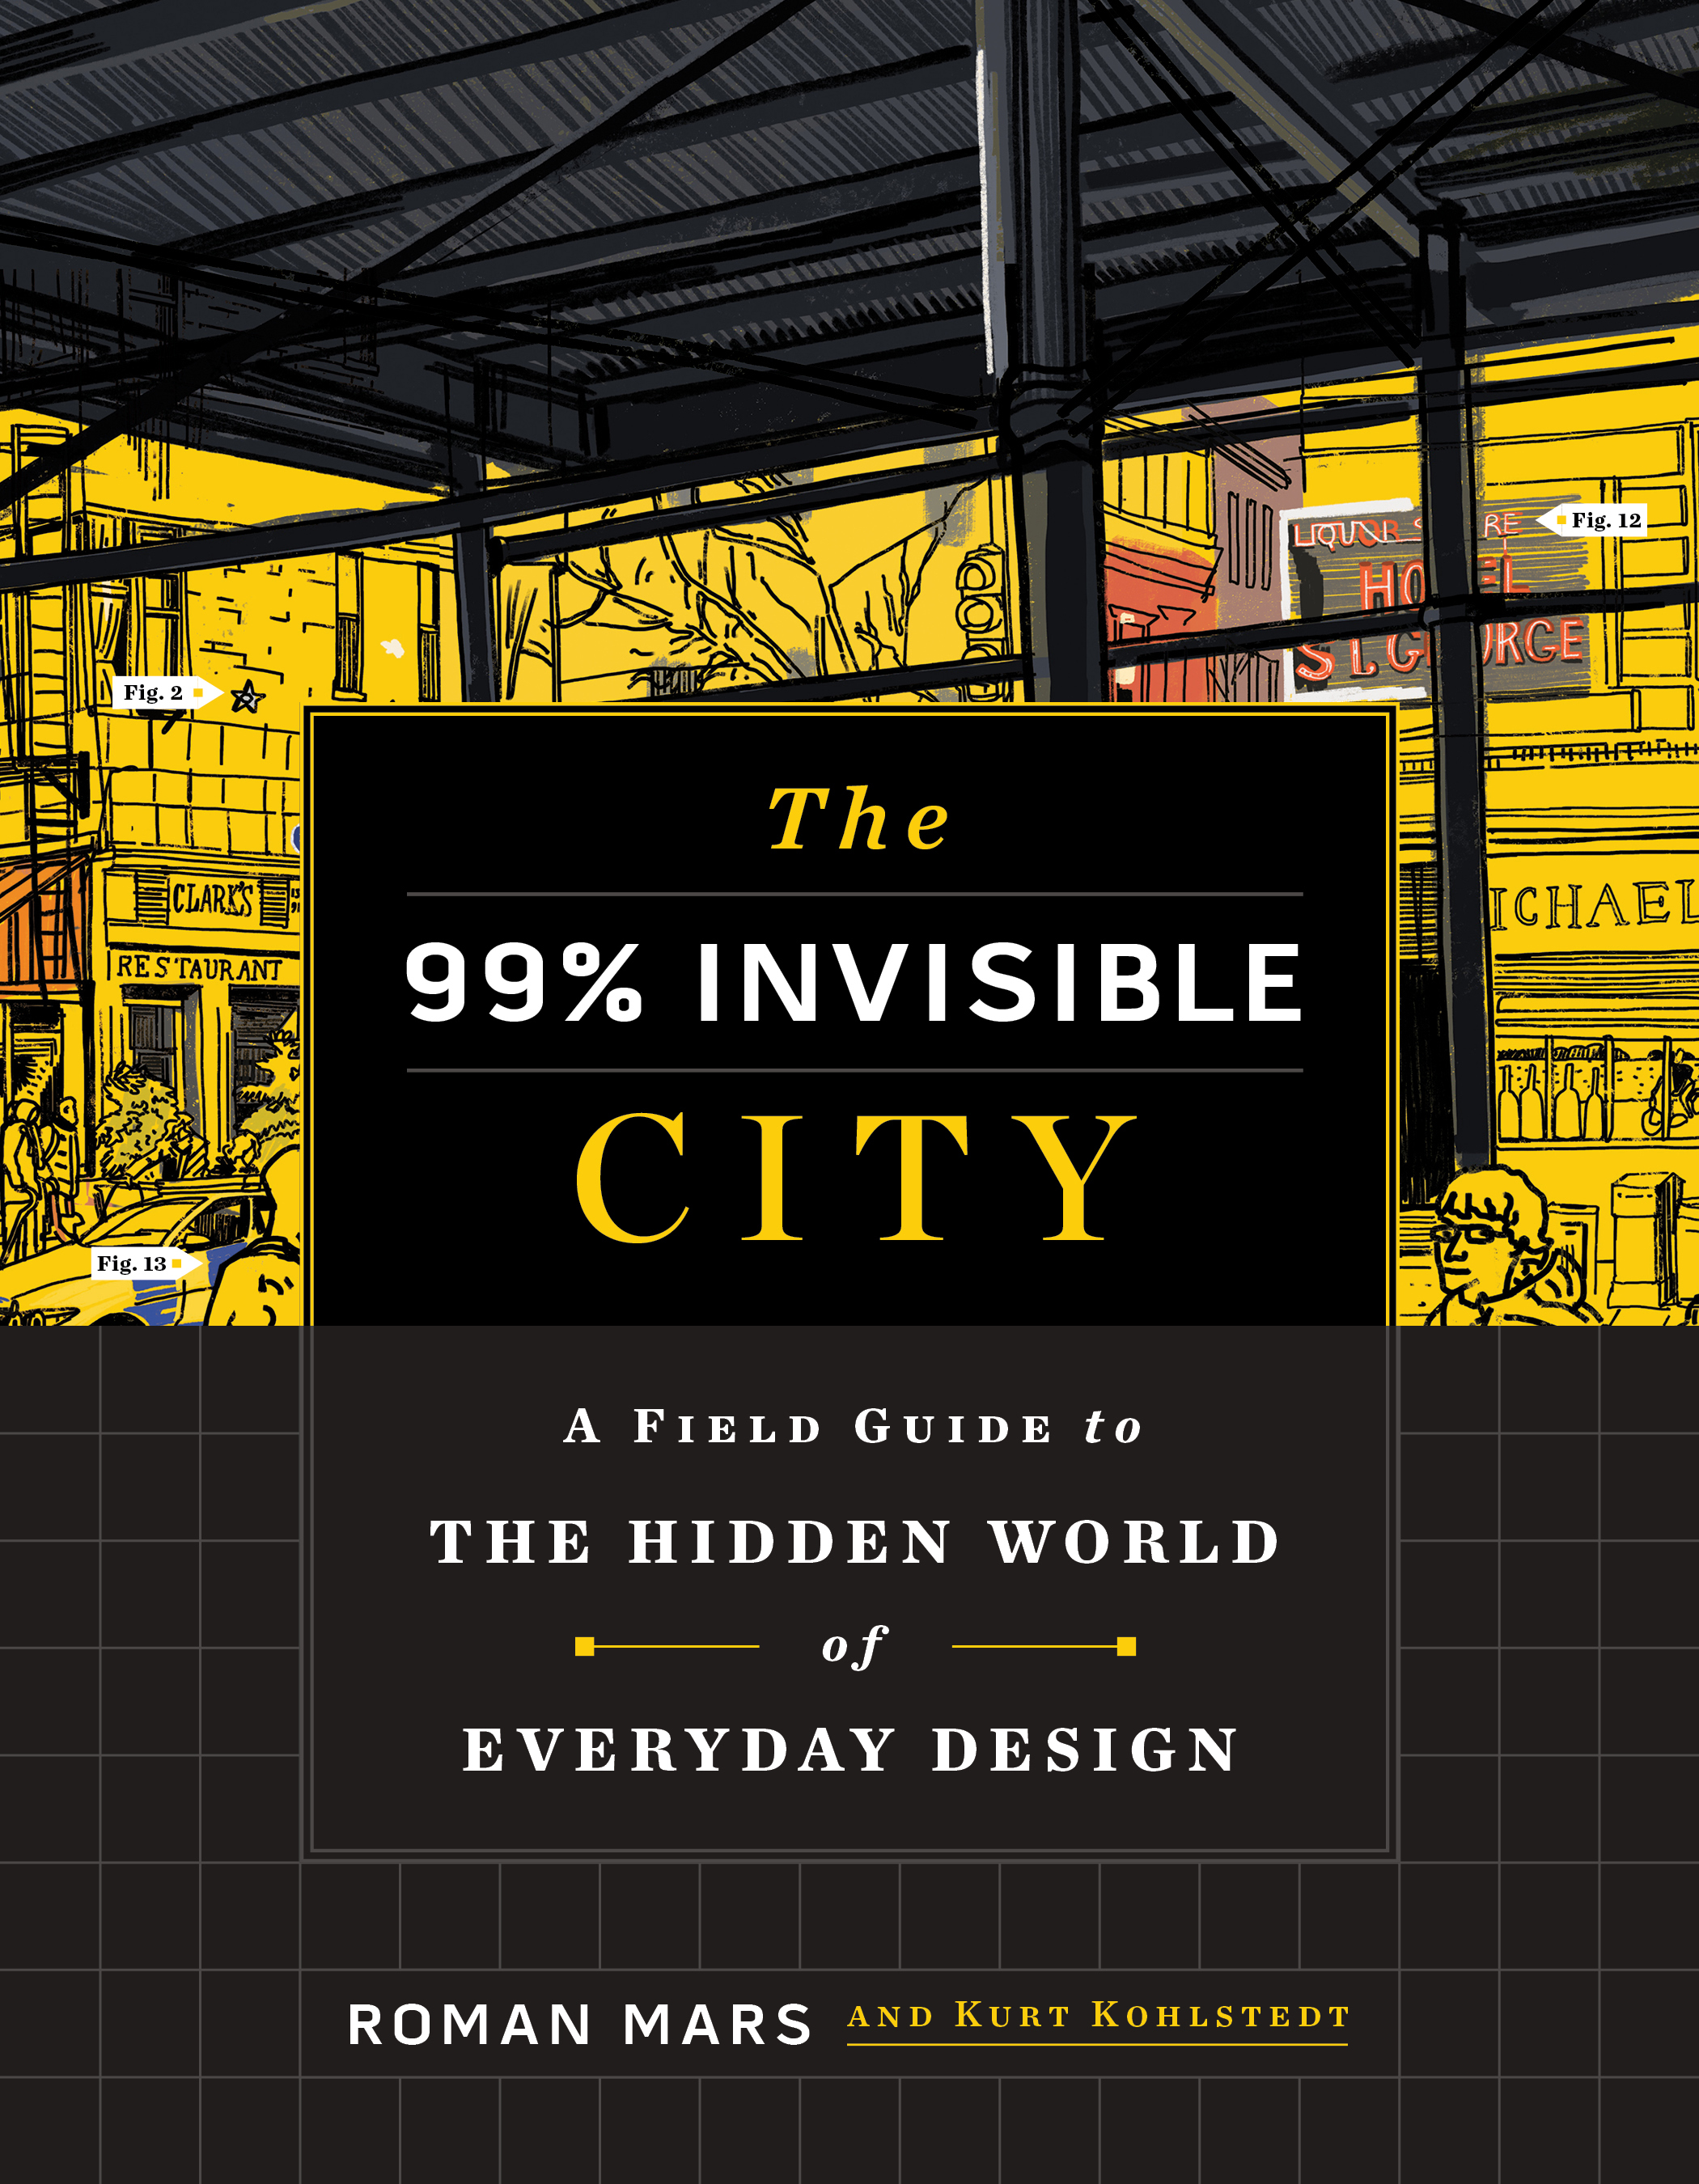 The cover of a book reading the 99% invisible city by roman mars and Kurt Kohlstedt